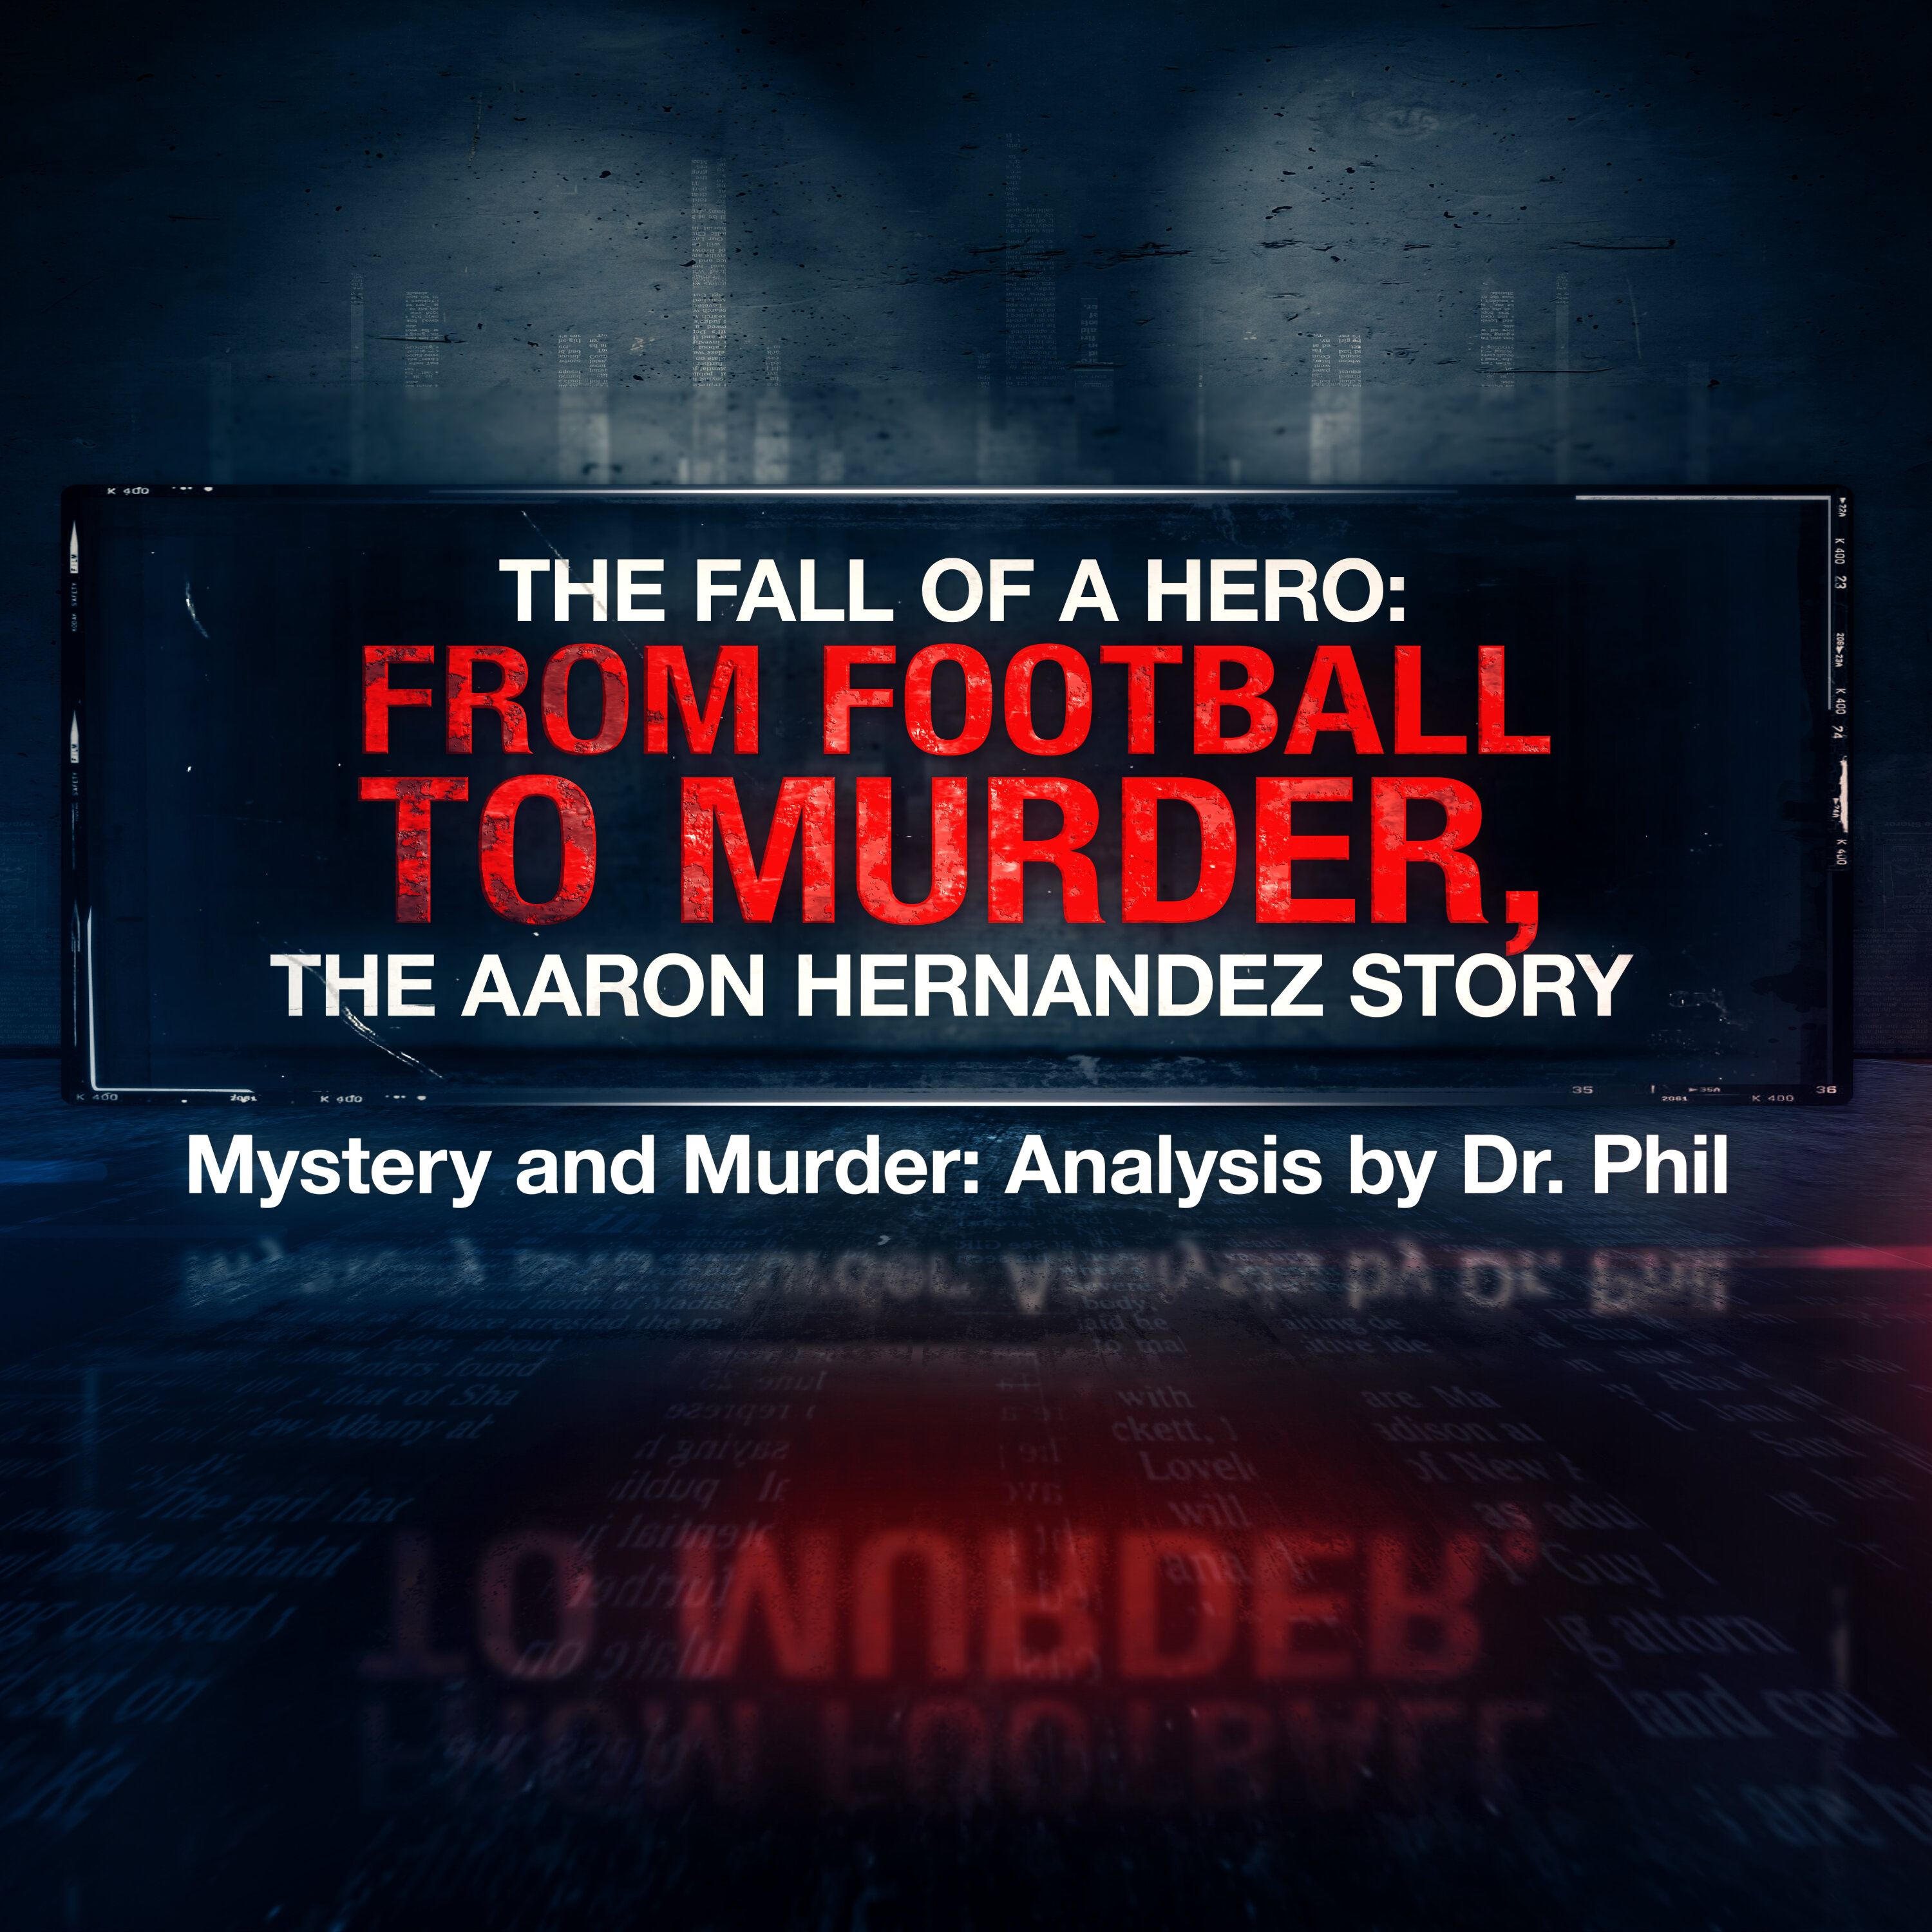 S8E4: The Fall of A Hero: From Football to Murder, The Aaron Hernandez Story